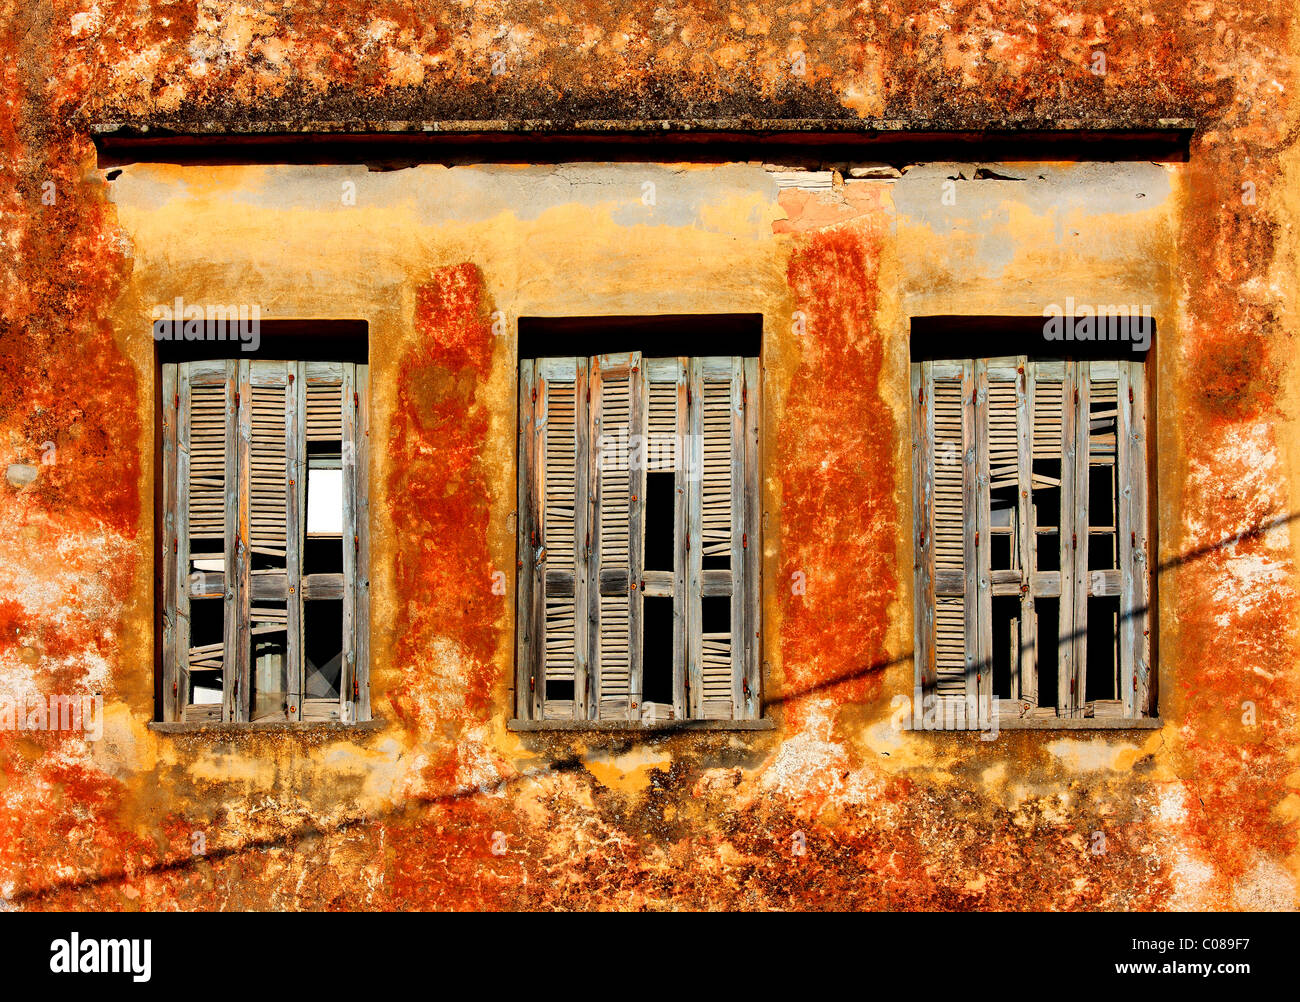 An old timeworn facade of an old house with broken windows in the old town of Rethymnon, Crete, Greece - Stock Image